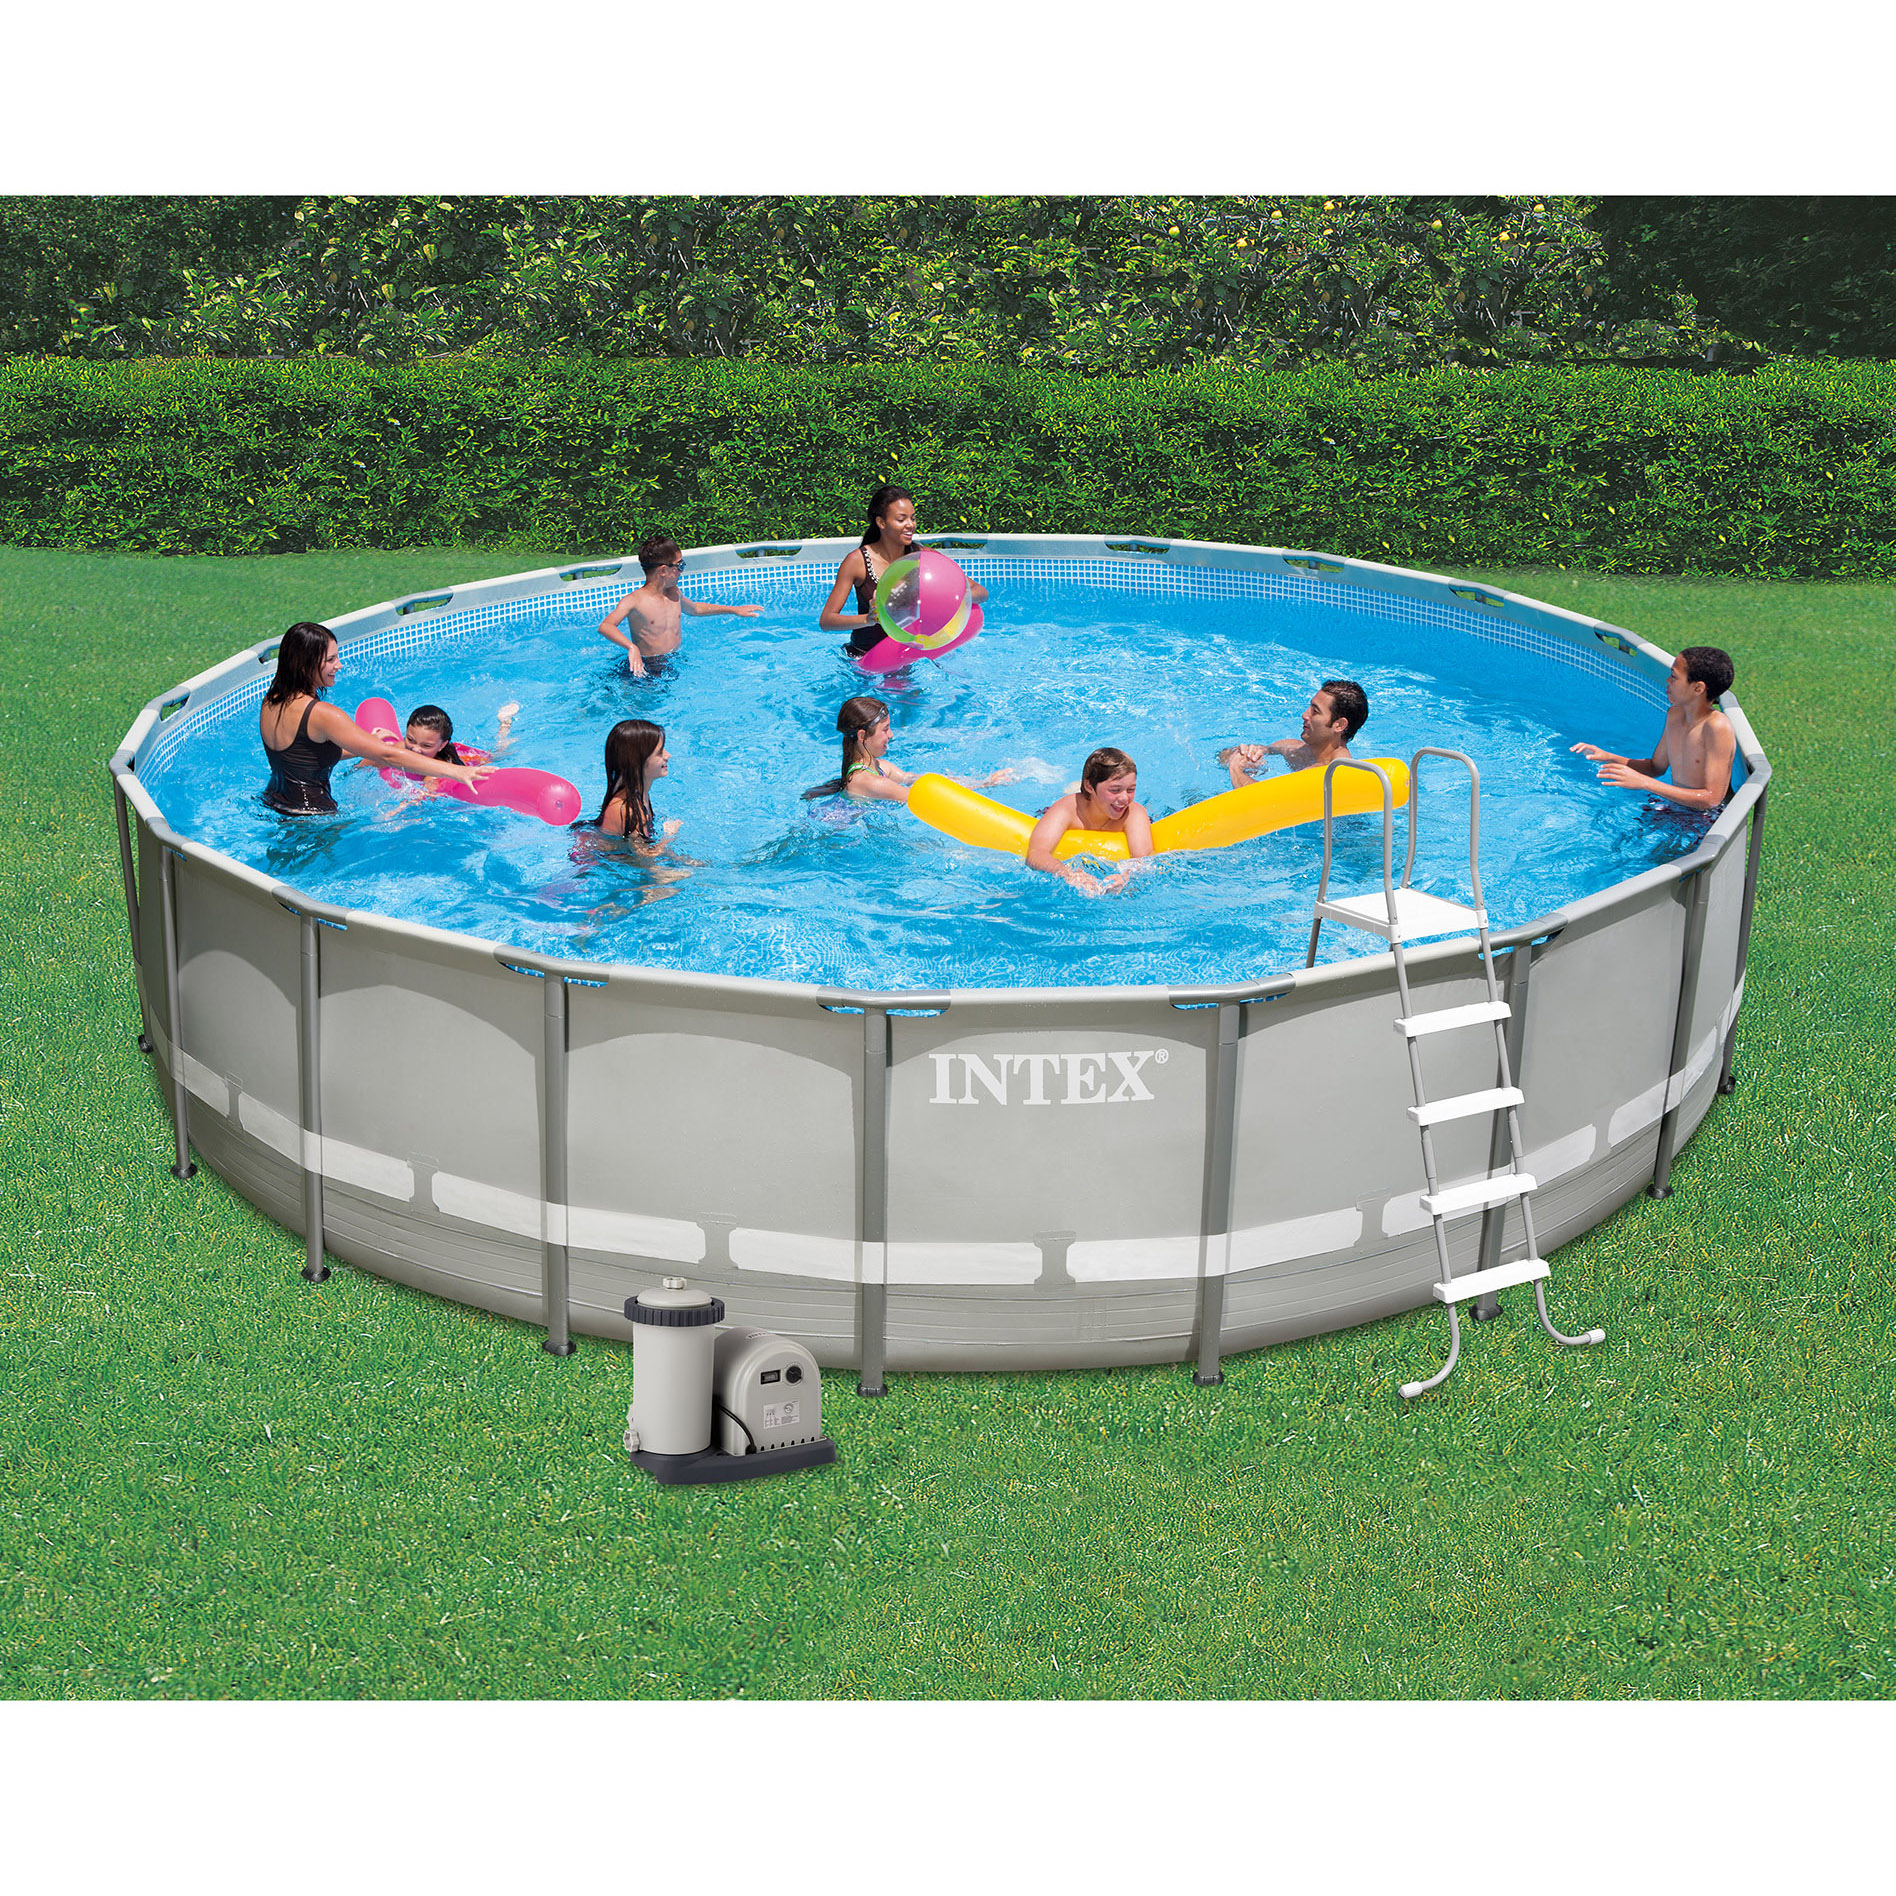 Intex 24 39 X 52 Ultra Frame Above Ground Swimming Pool Set With Filter Pump Ebay